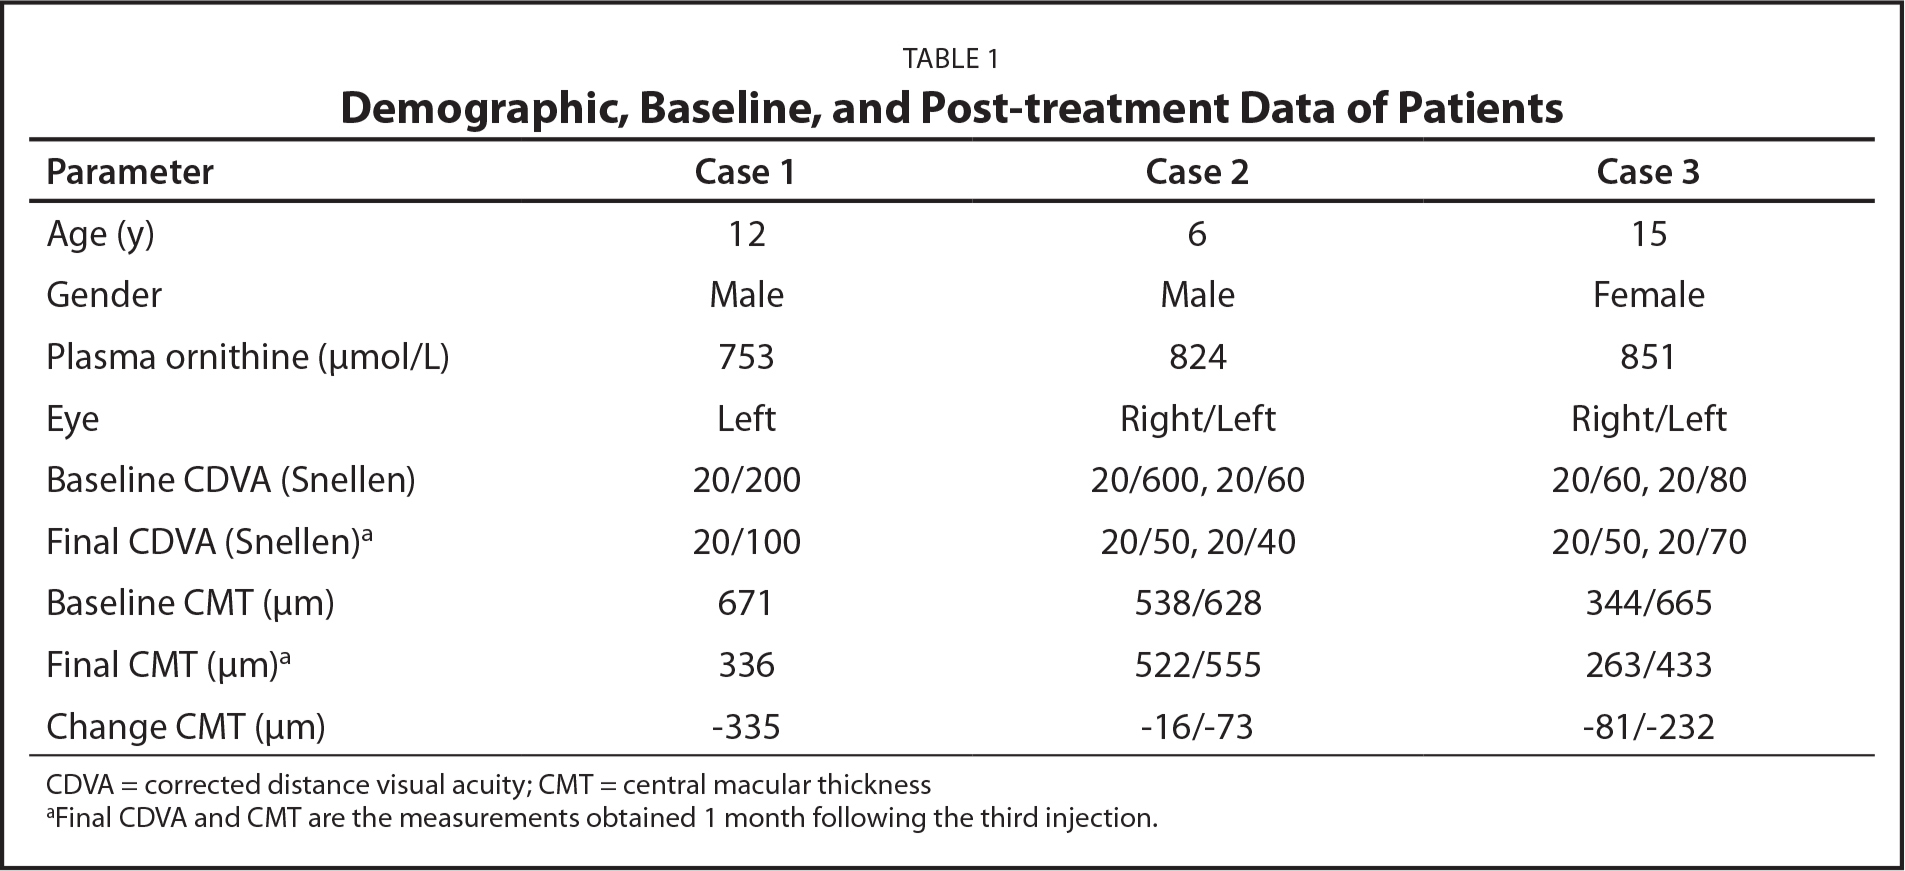 Demographic, Baseline, and Post-treatment Data of Patients